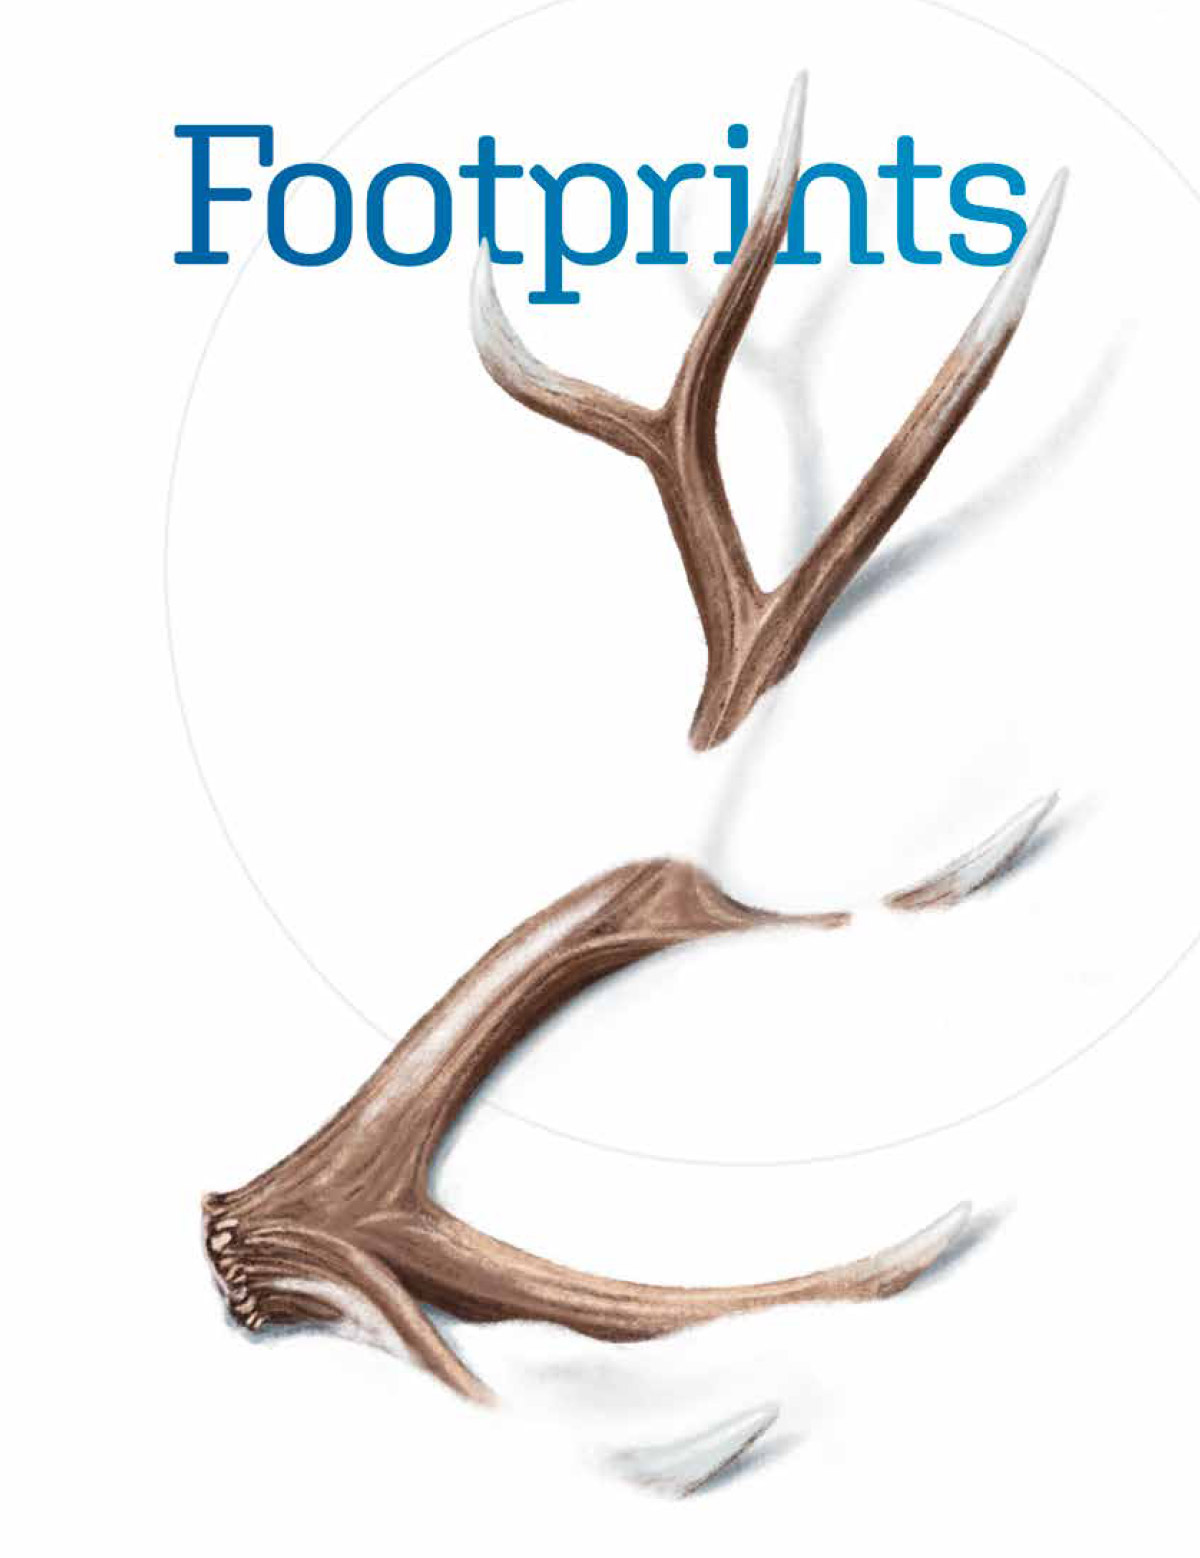 Footprints Magazine Winter 2021 Cover Image